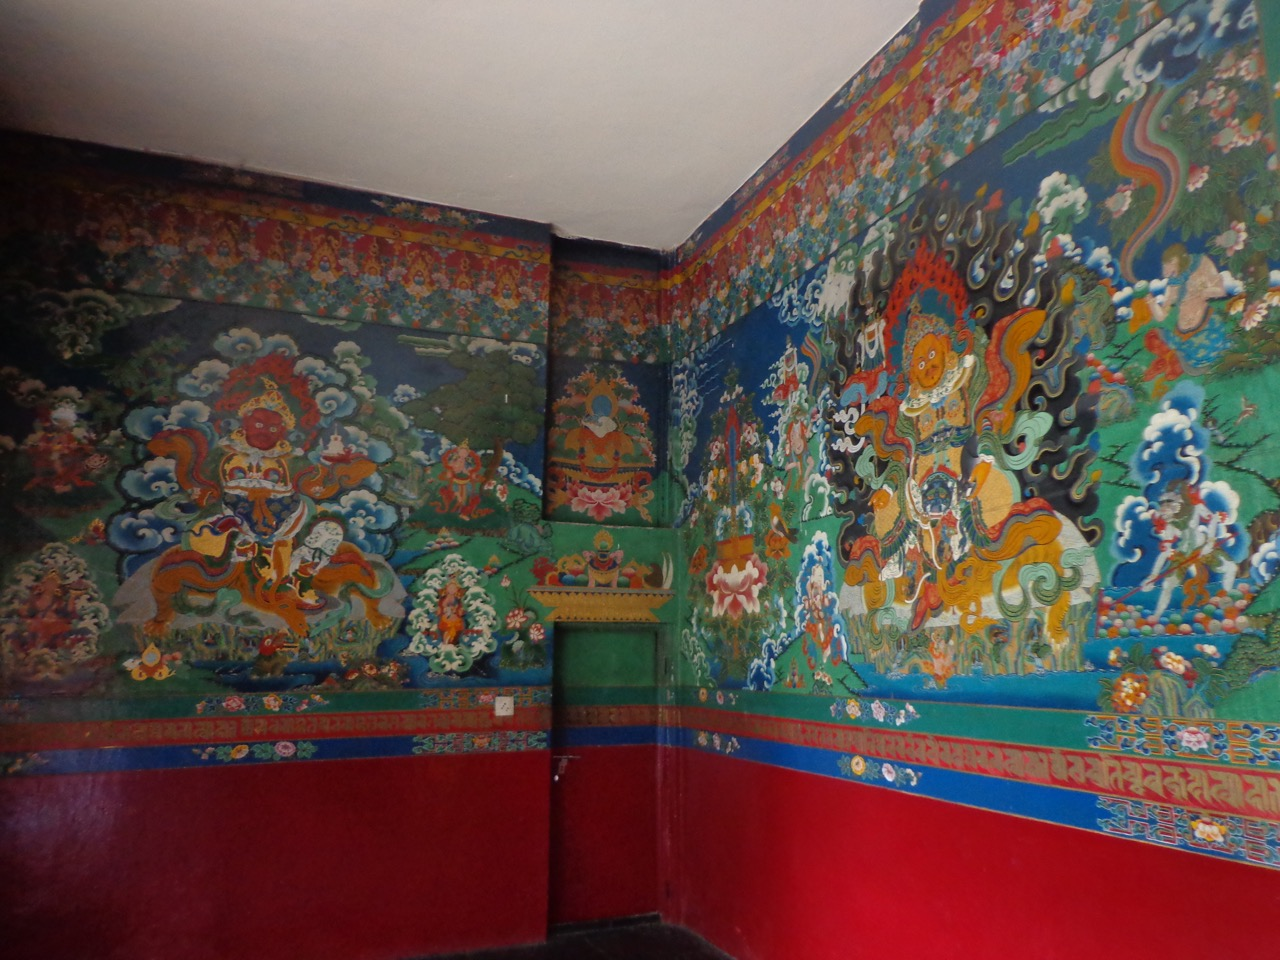 The walls are decorated with traditional Tibetan paintings.